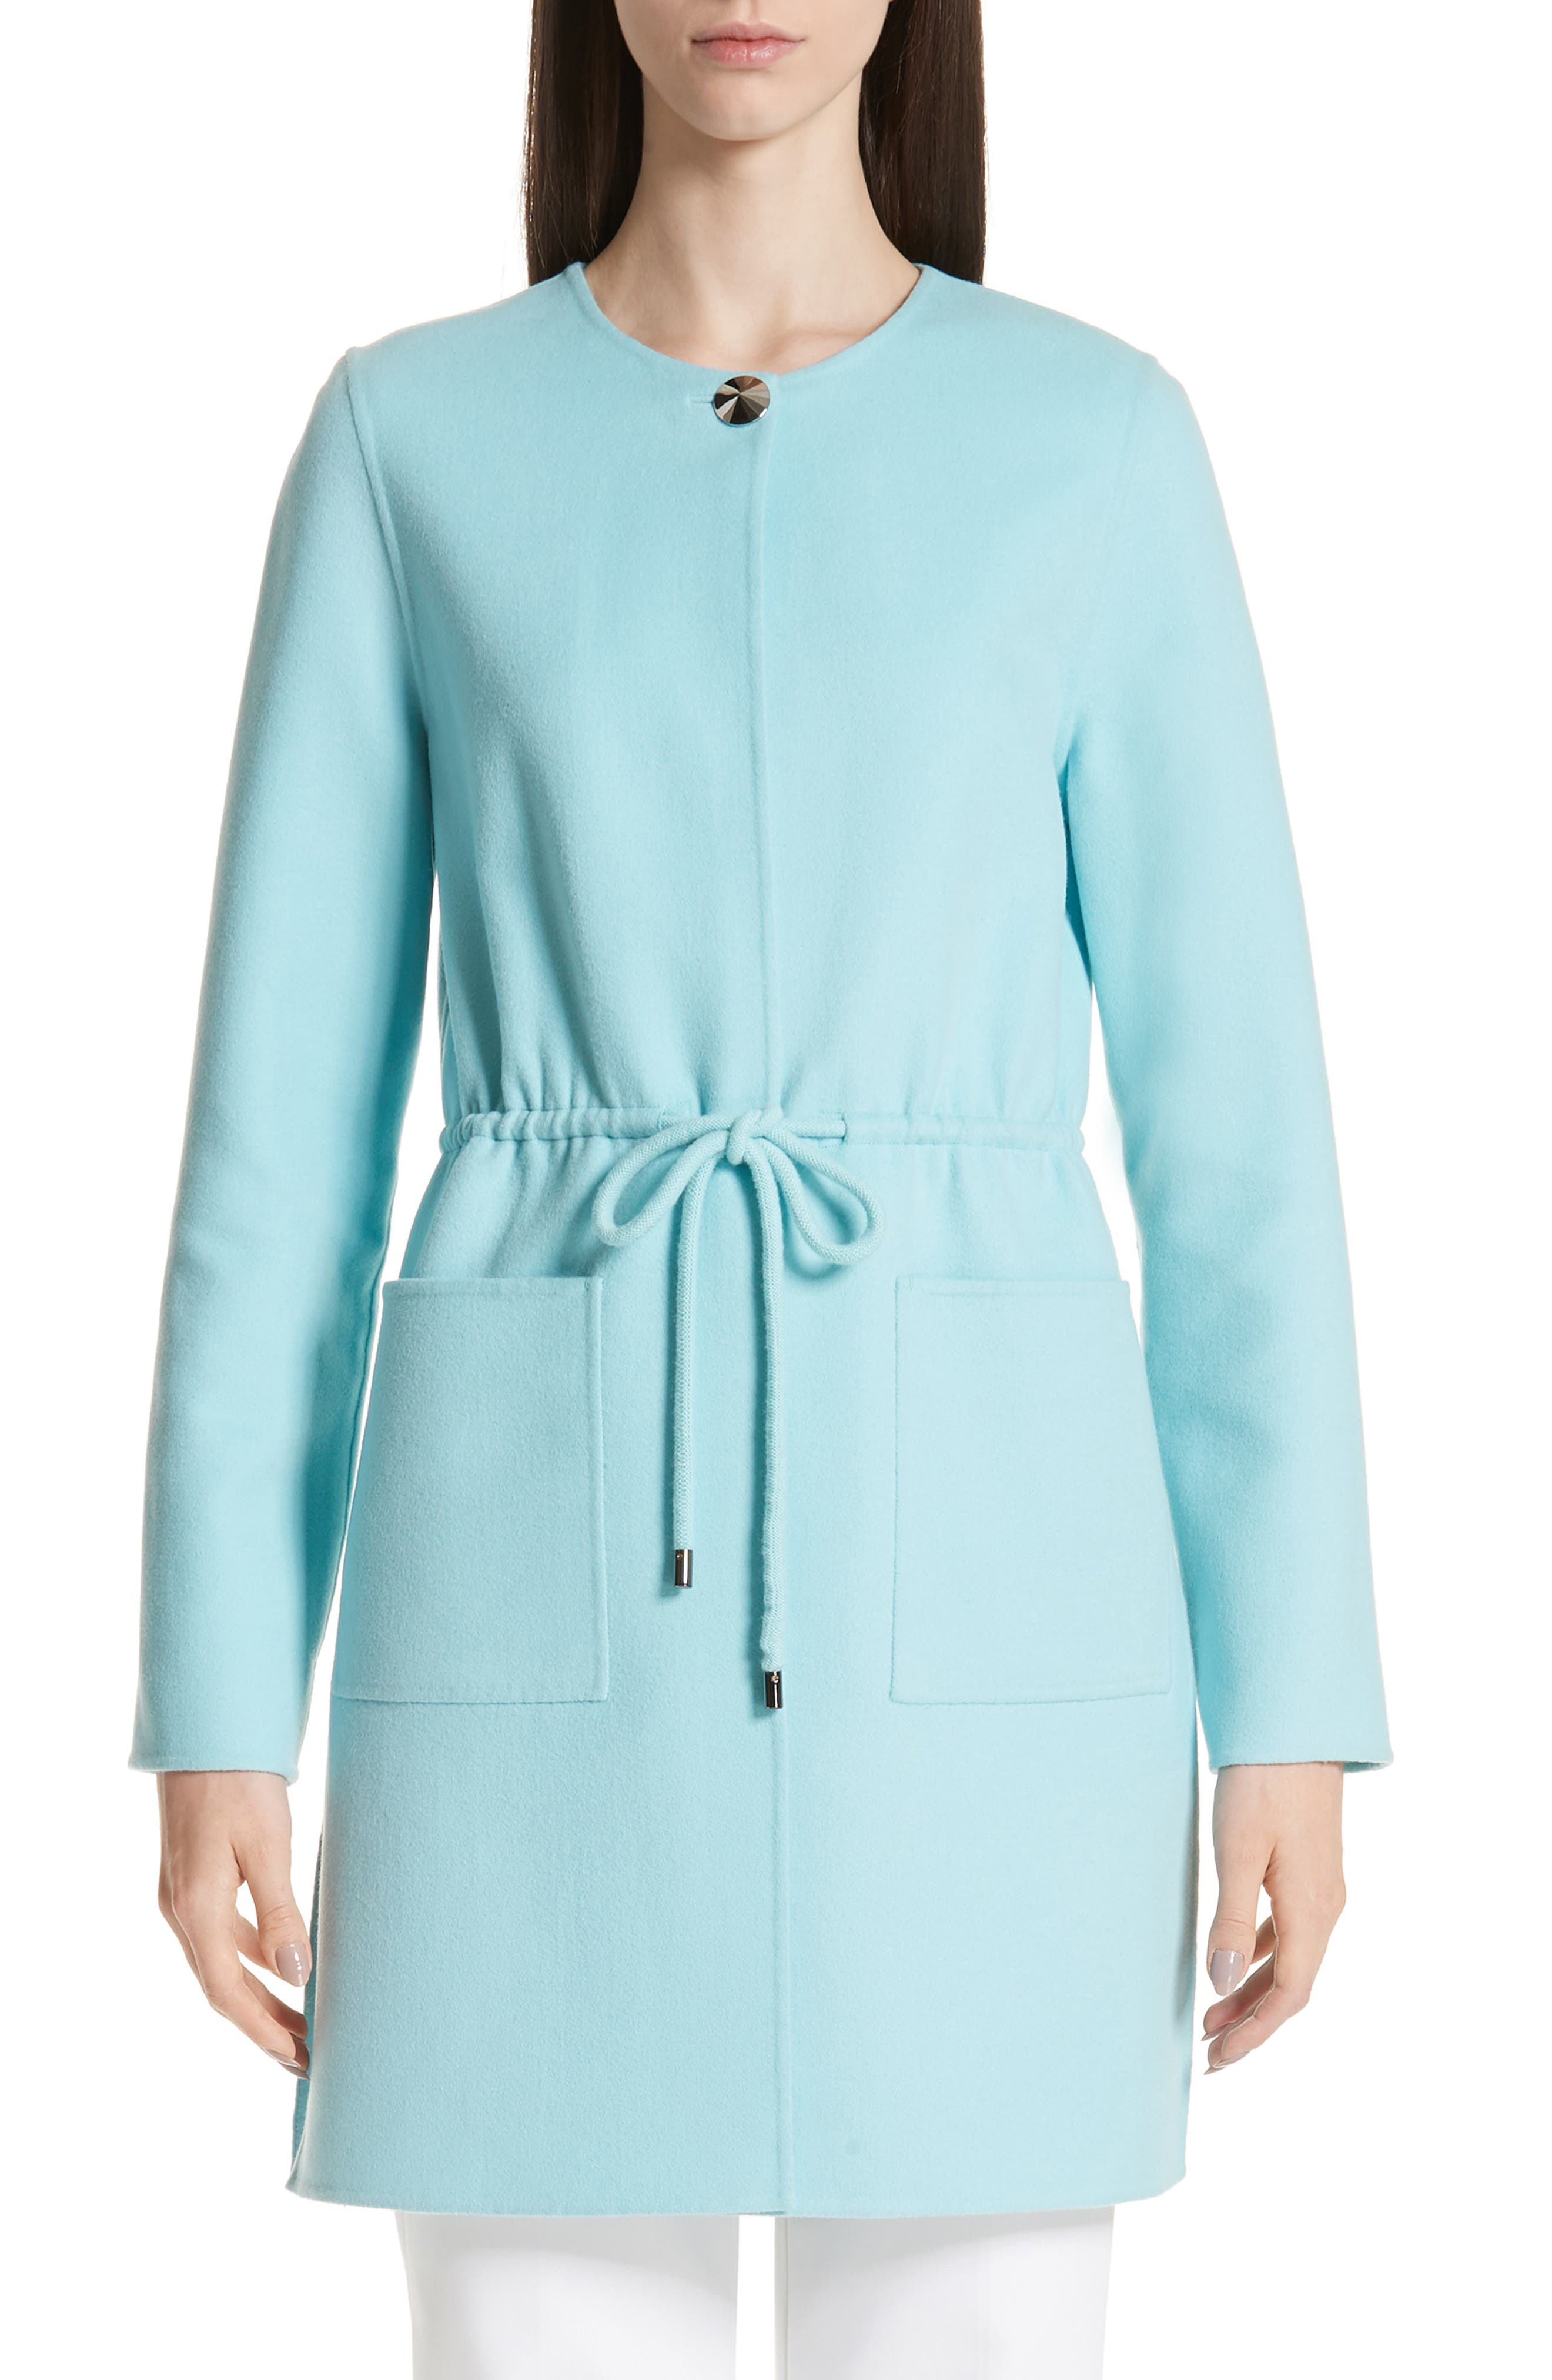 ST. JOHN COLLECTION,                             Double Face Wool & Cashmere Jacket,                             Main thumbnail 1, color,                             AQUAMARINE